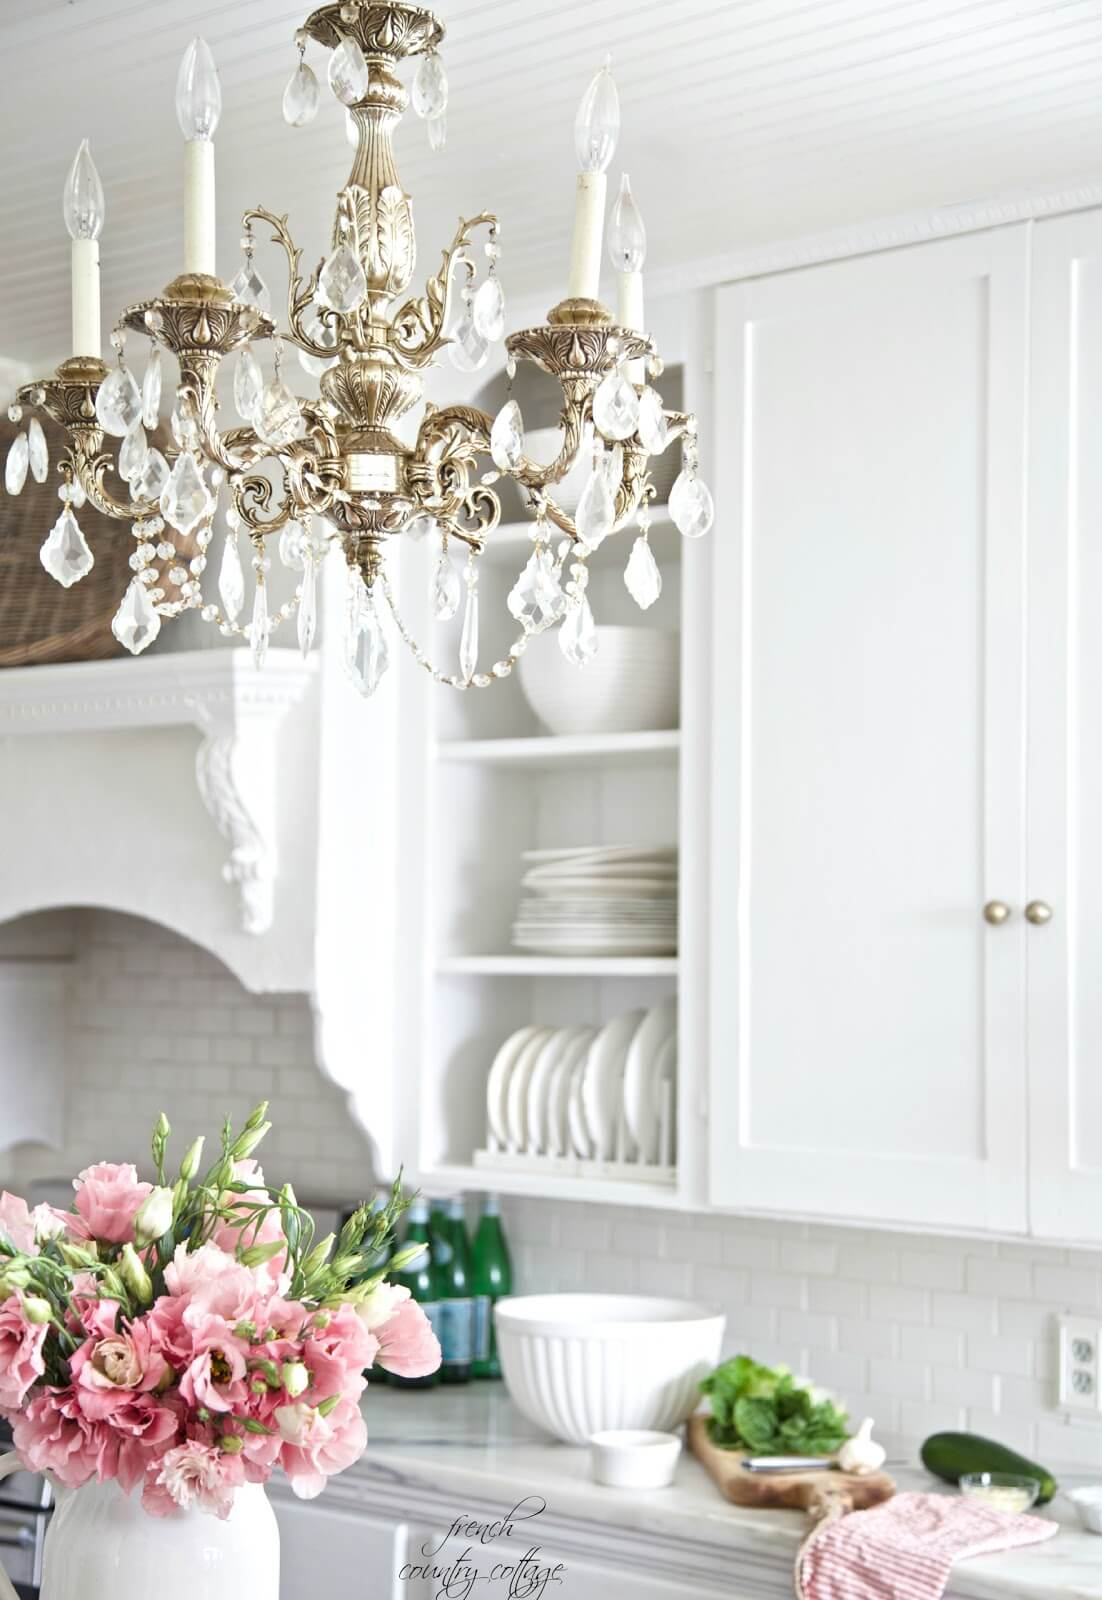 Silver and Crystal Chandelier with Wooden Cabinets